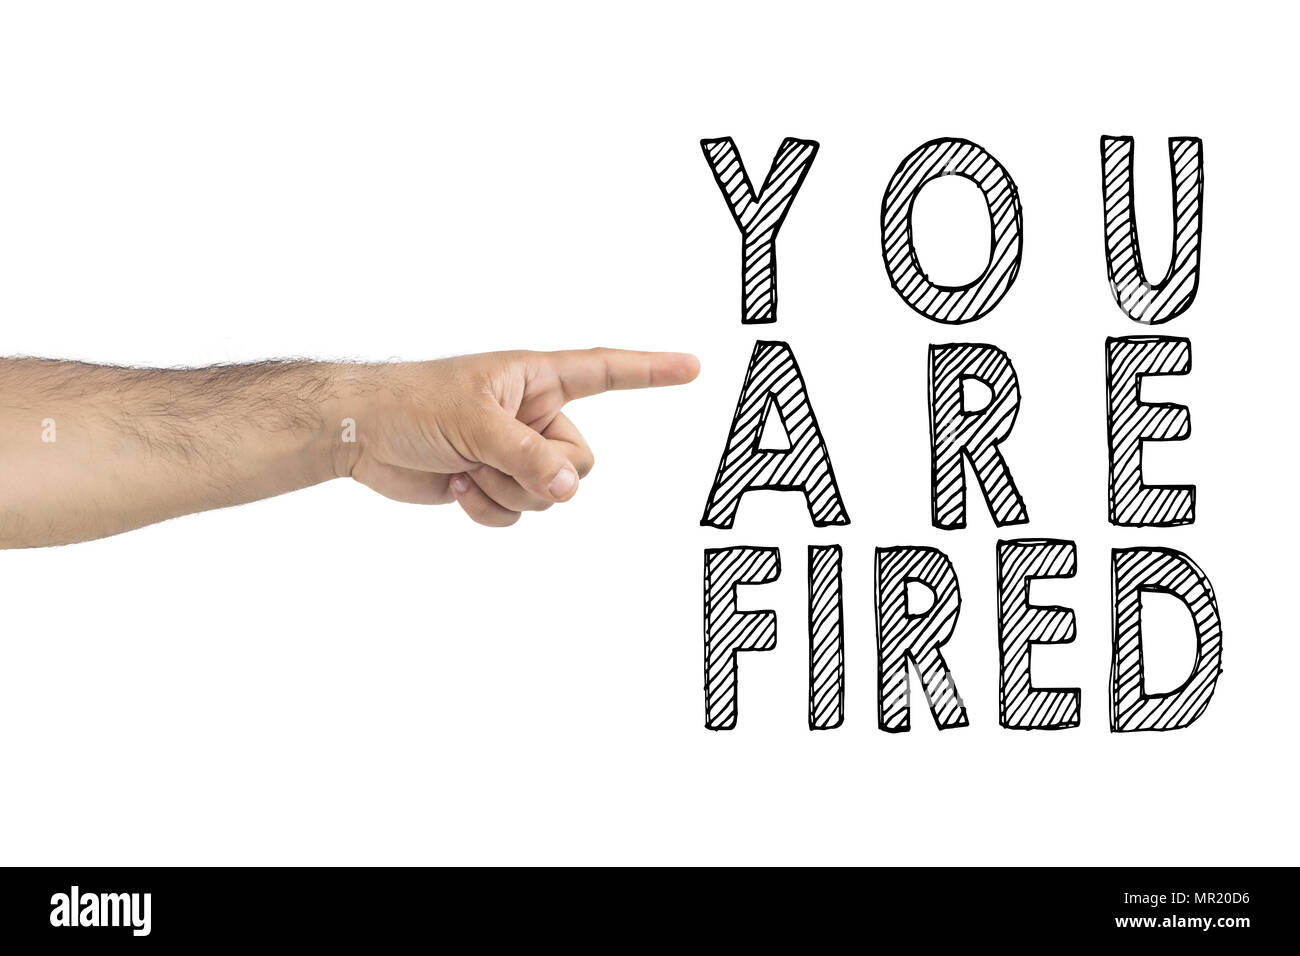 You are fired. boss gesturing way out hand sign with index finger. BUSINESSMAN FIRED EMPLOYEE. HR, business, concept. - Stock Image